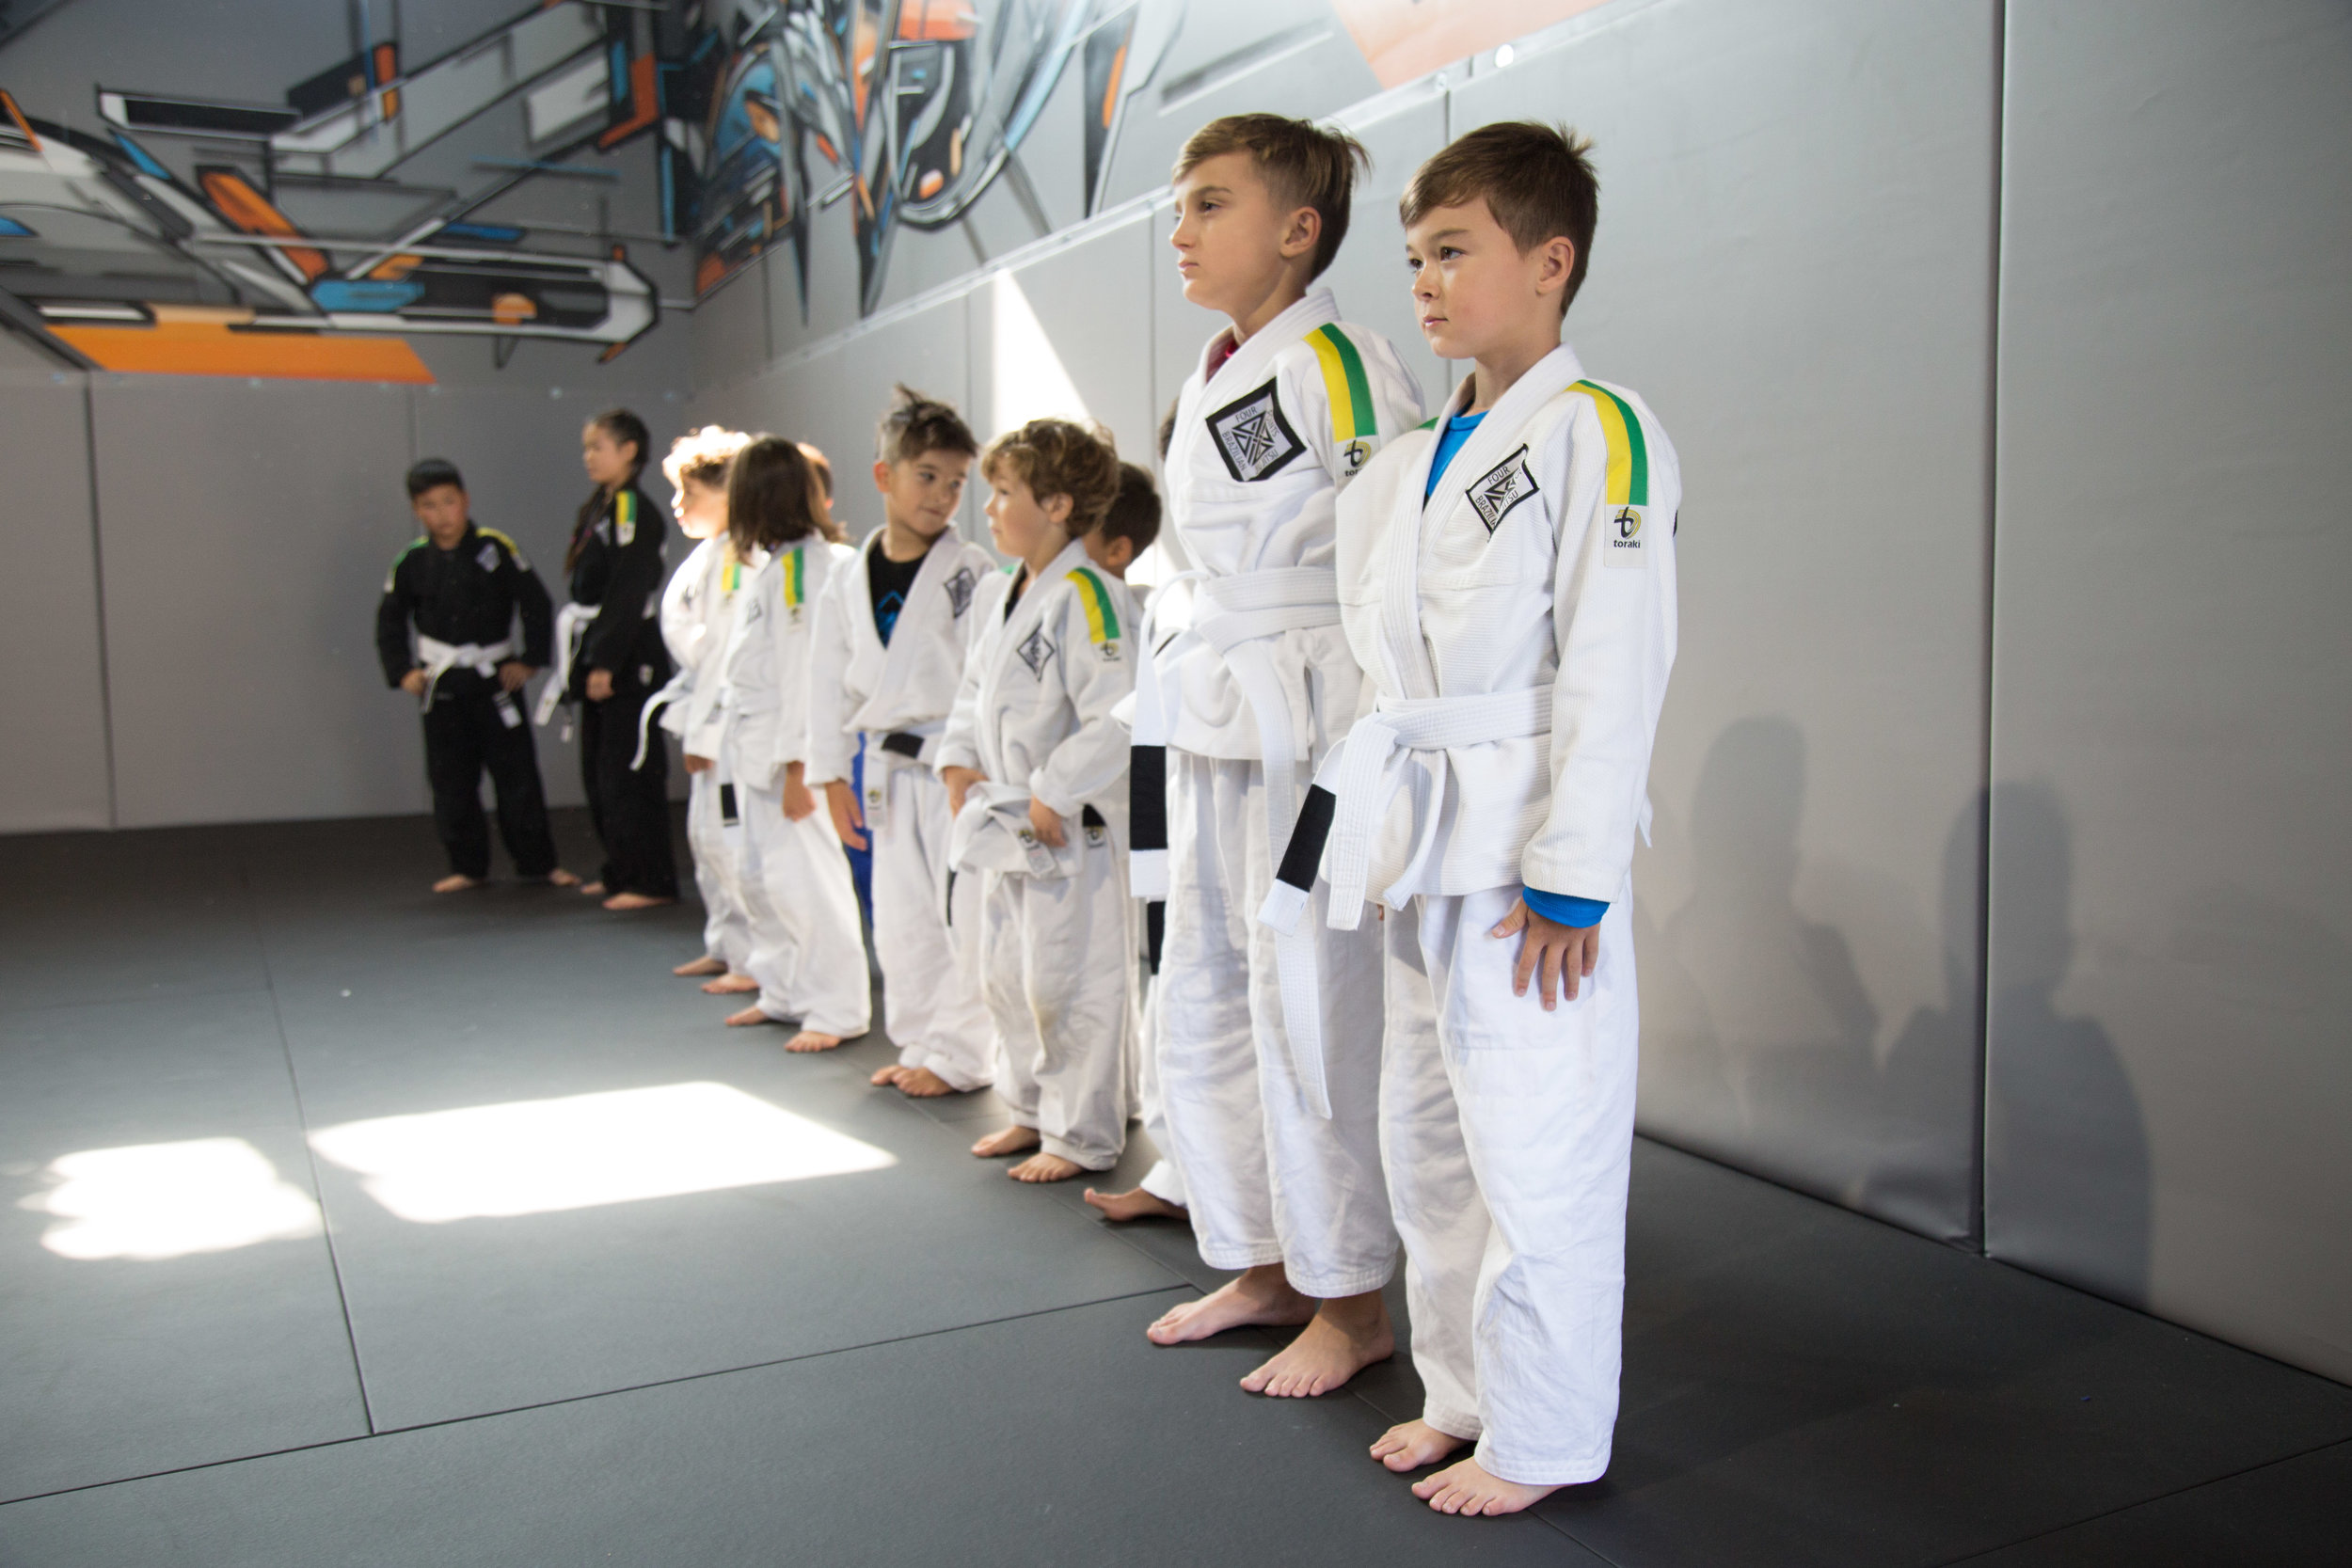 respect - There is no BJJ without your opponent. Our students build on close bond based on mutual respect and acceptance. Respect of the pride of belonging to this team.